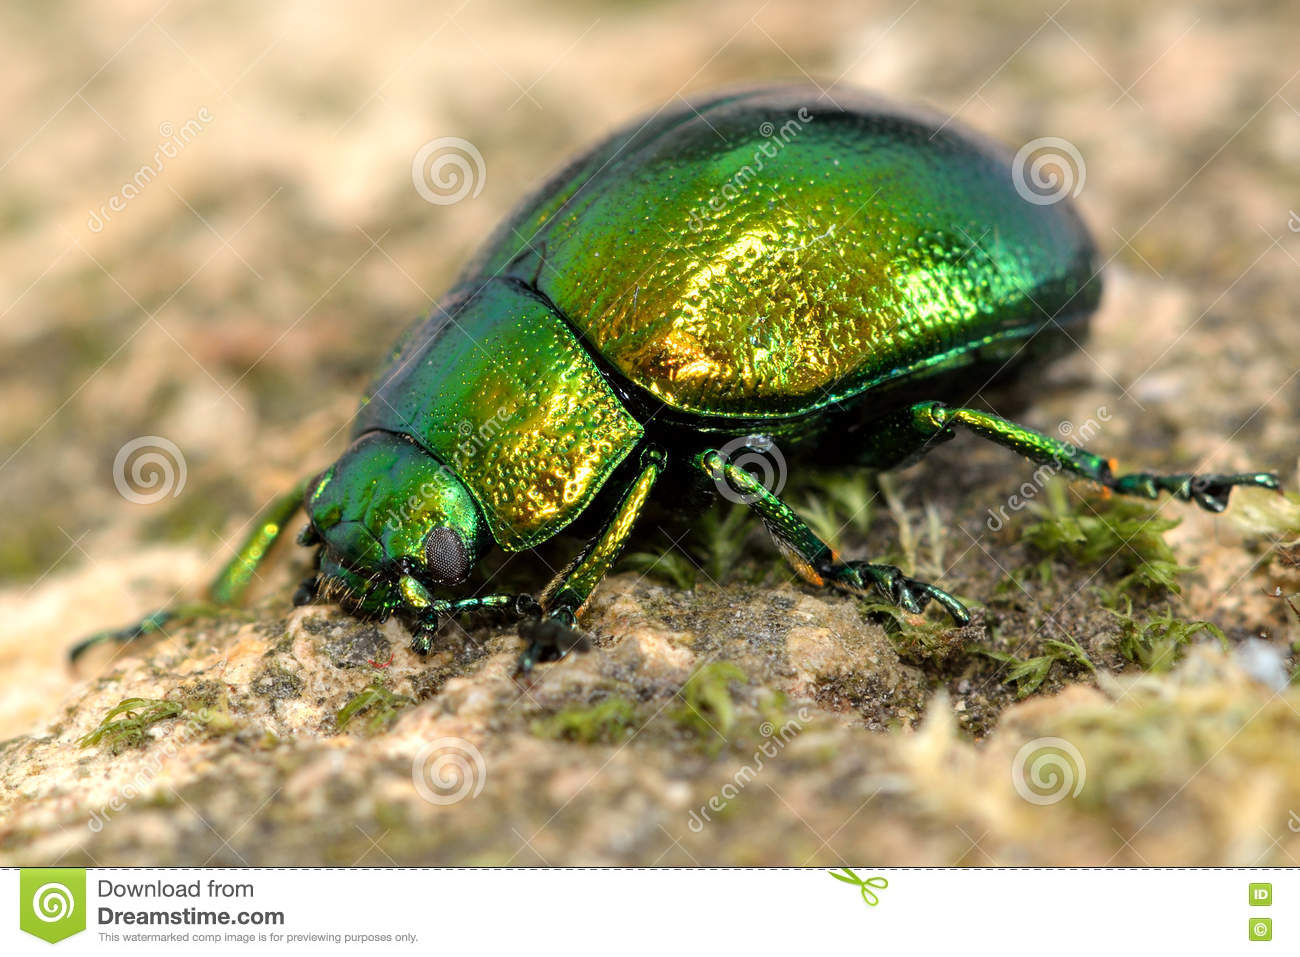 Mint Leaf Beetle (Chrysolina Herbacea) Stock Photo.